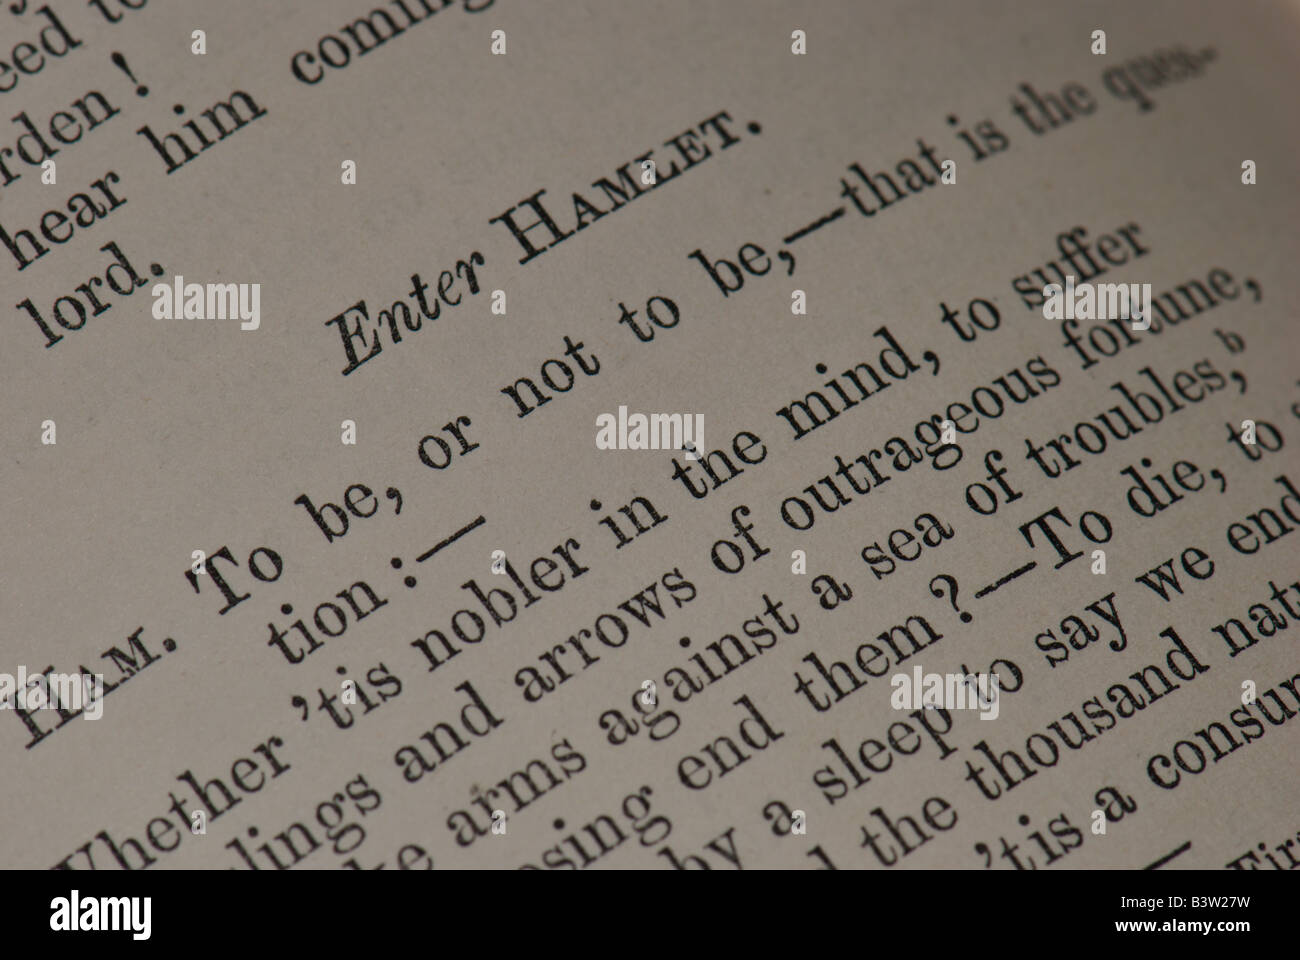 'To be or not to be' quote from Hamlet, in antique edition of Shakespeare's works - Stock Image